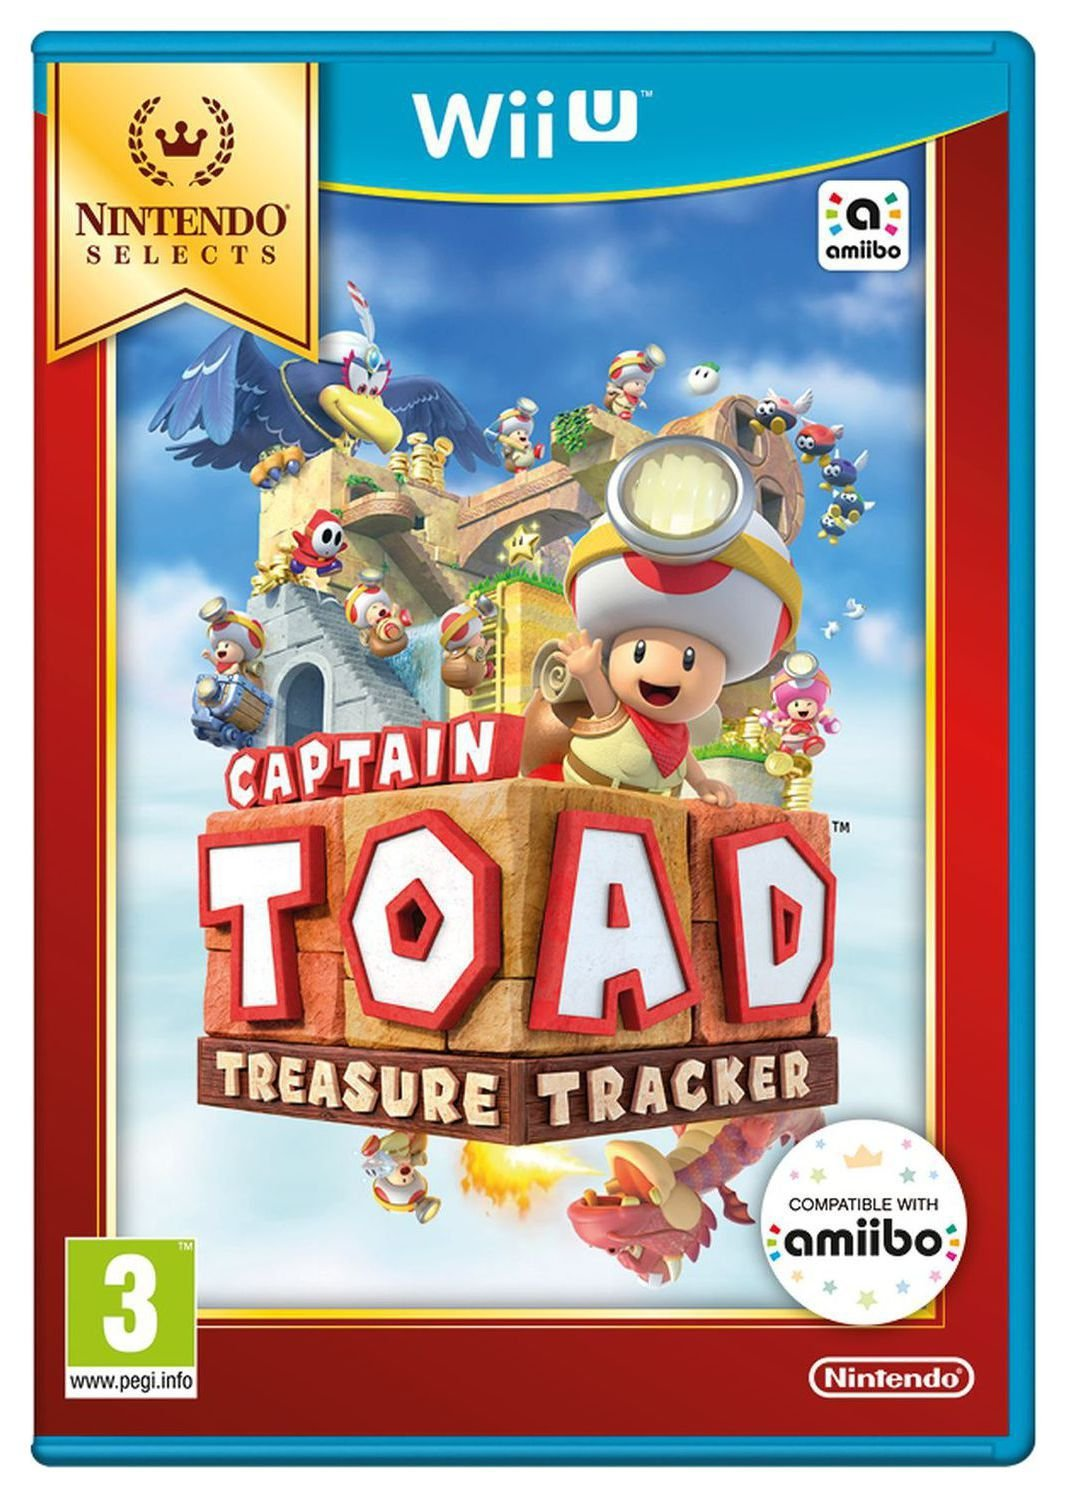 Image of Captain Toad - Nintendo - Wii U - Game